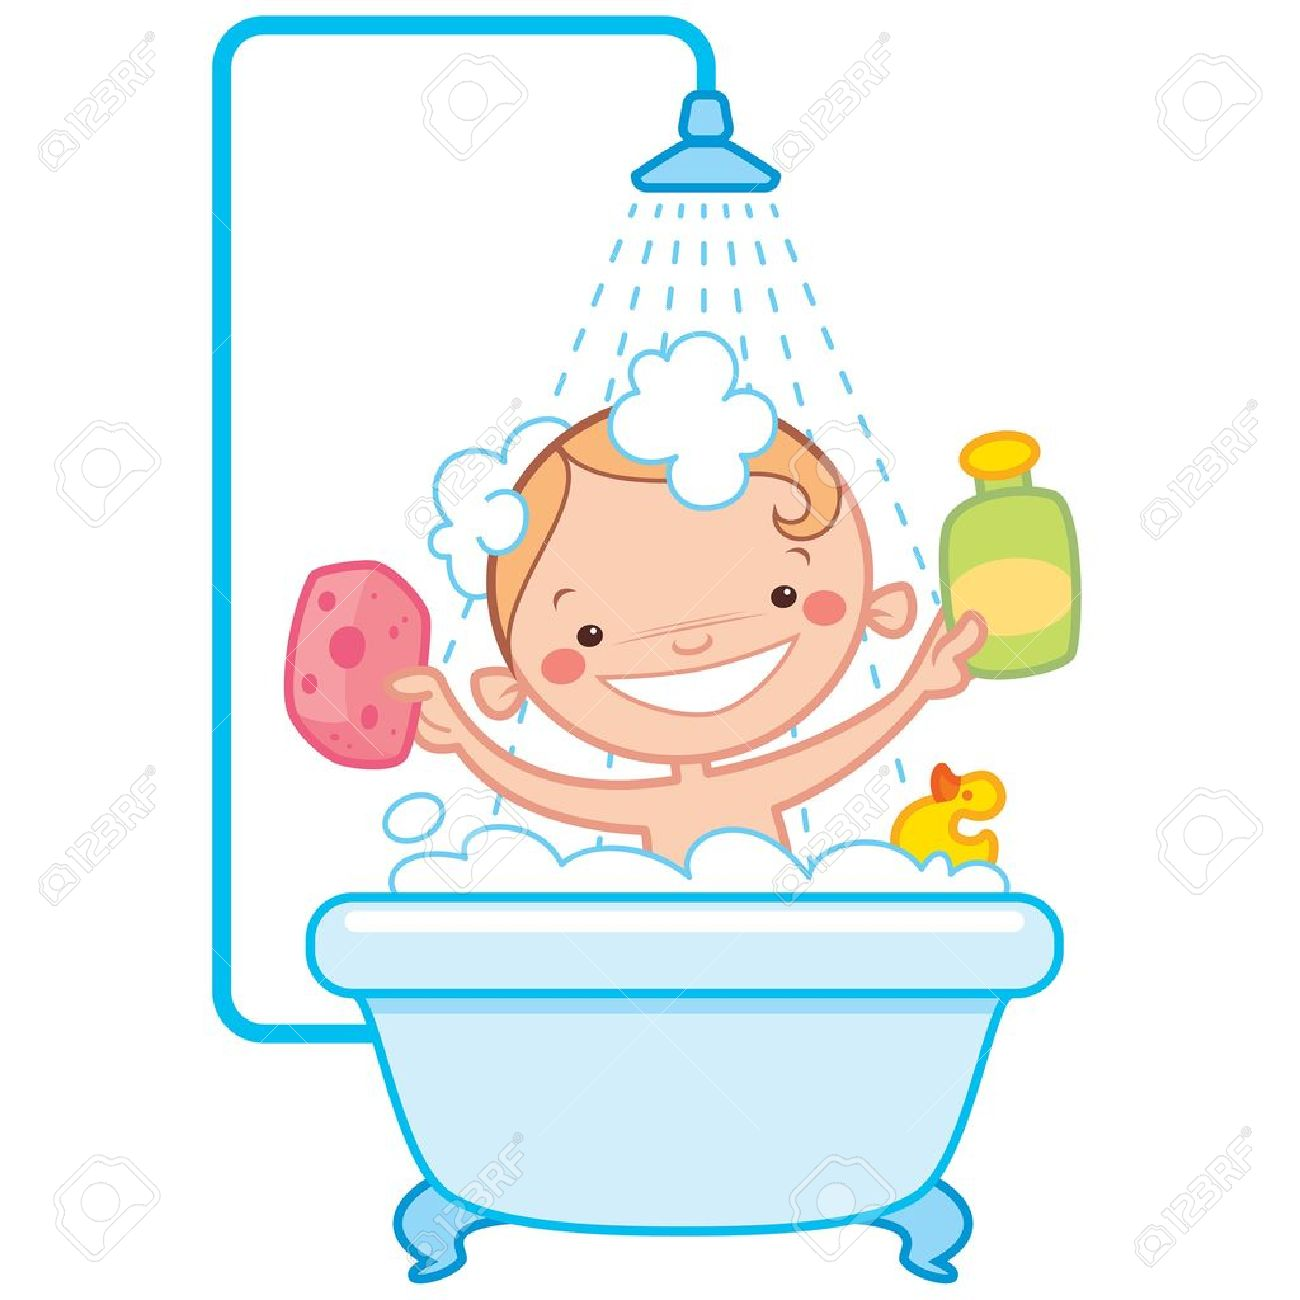 Take a bath clipart 4 » Clipart Station.